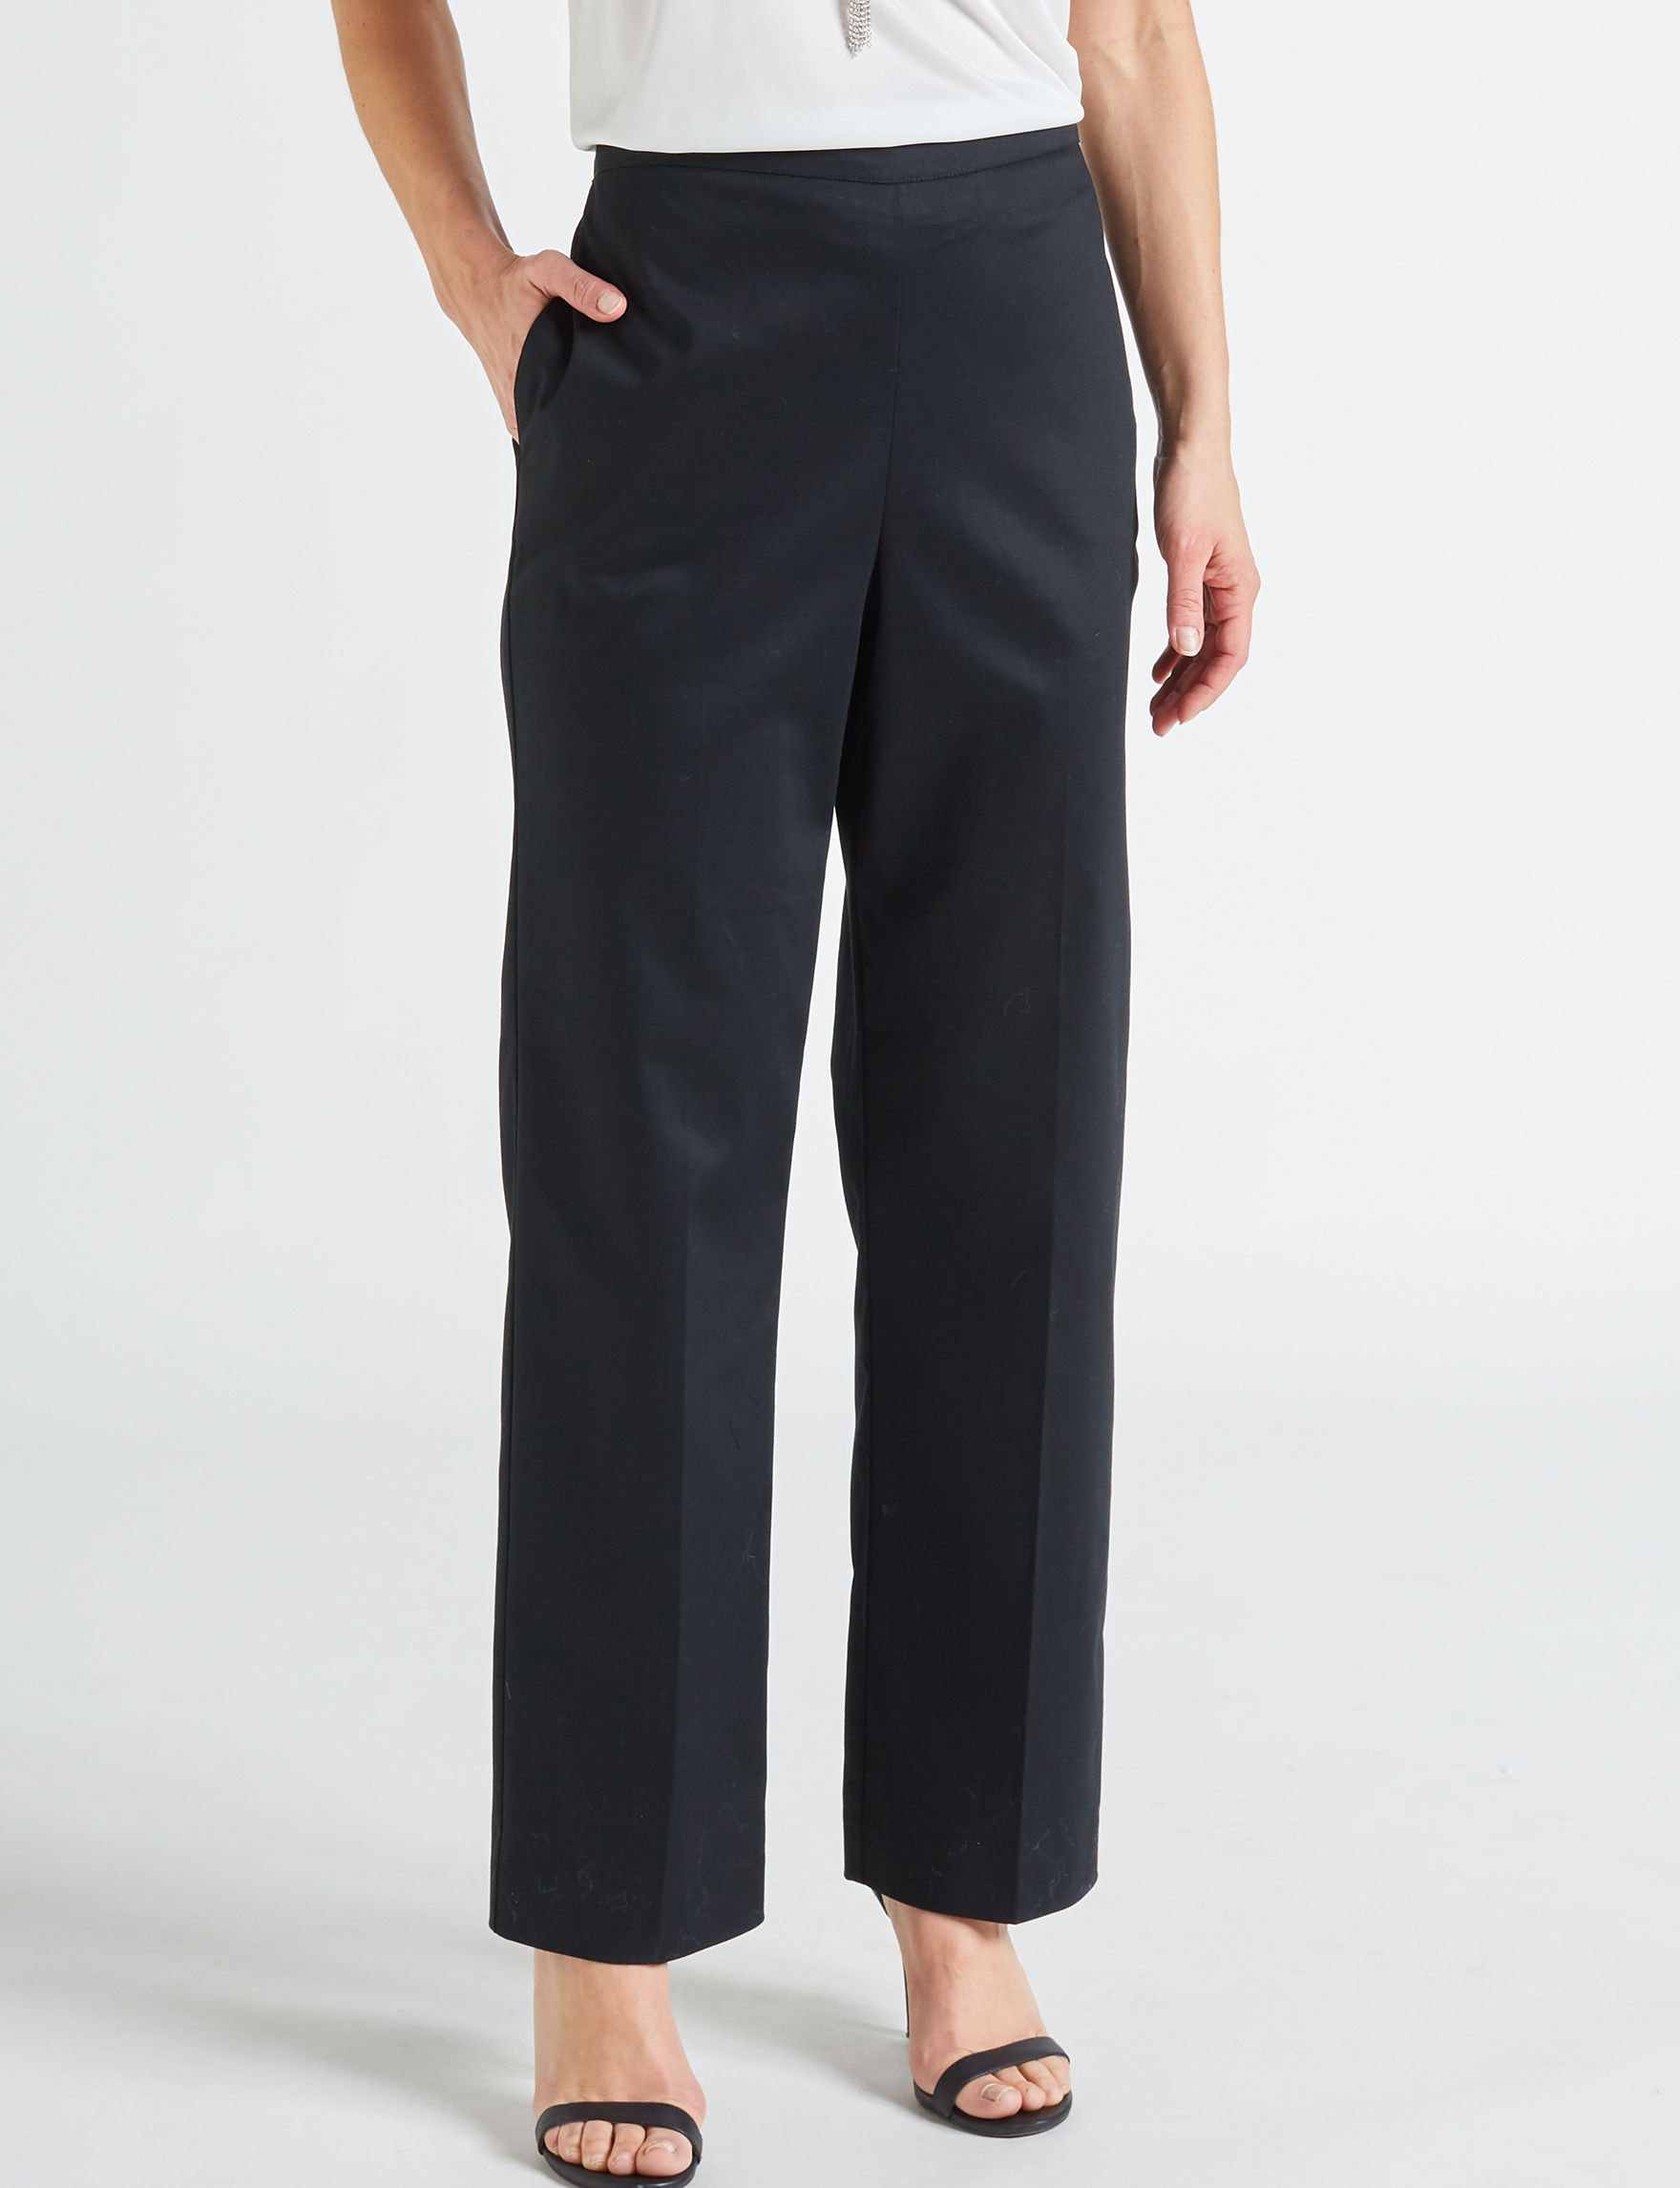 Alfred Dunner Black Regular Relaxed Straight Stretch